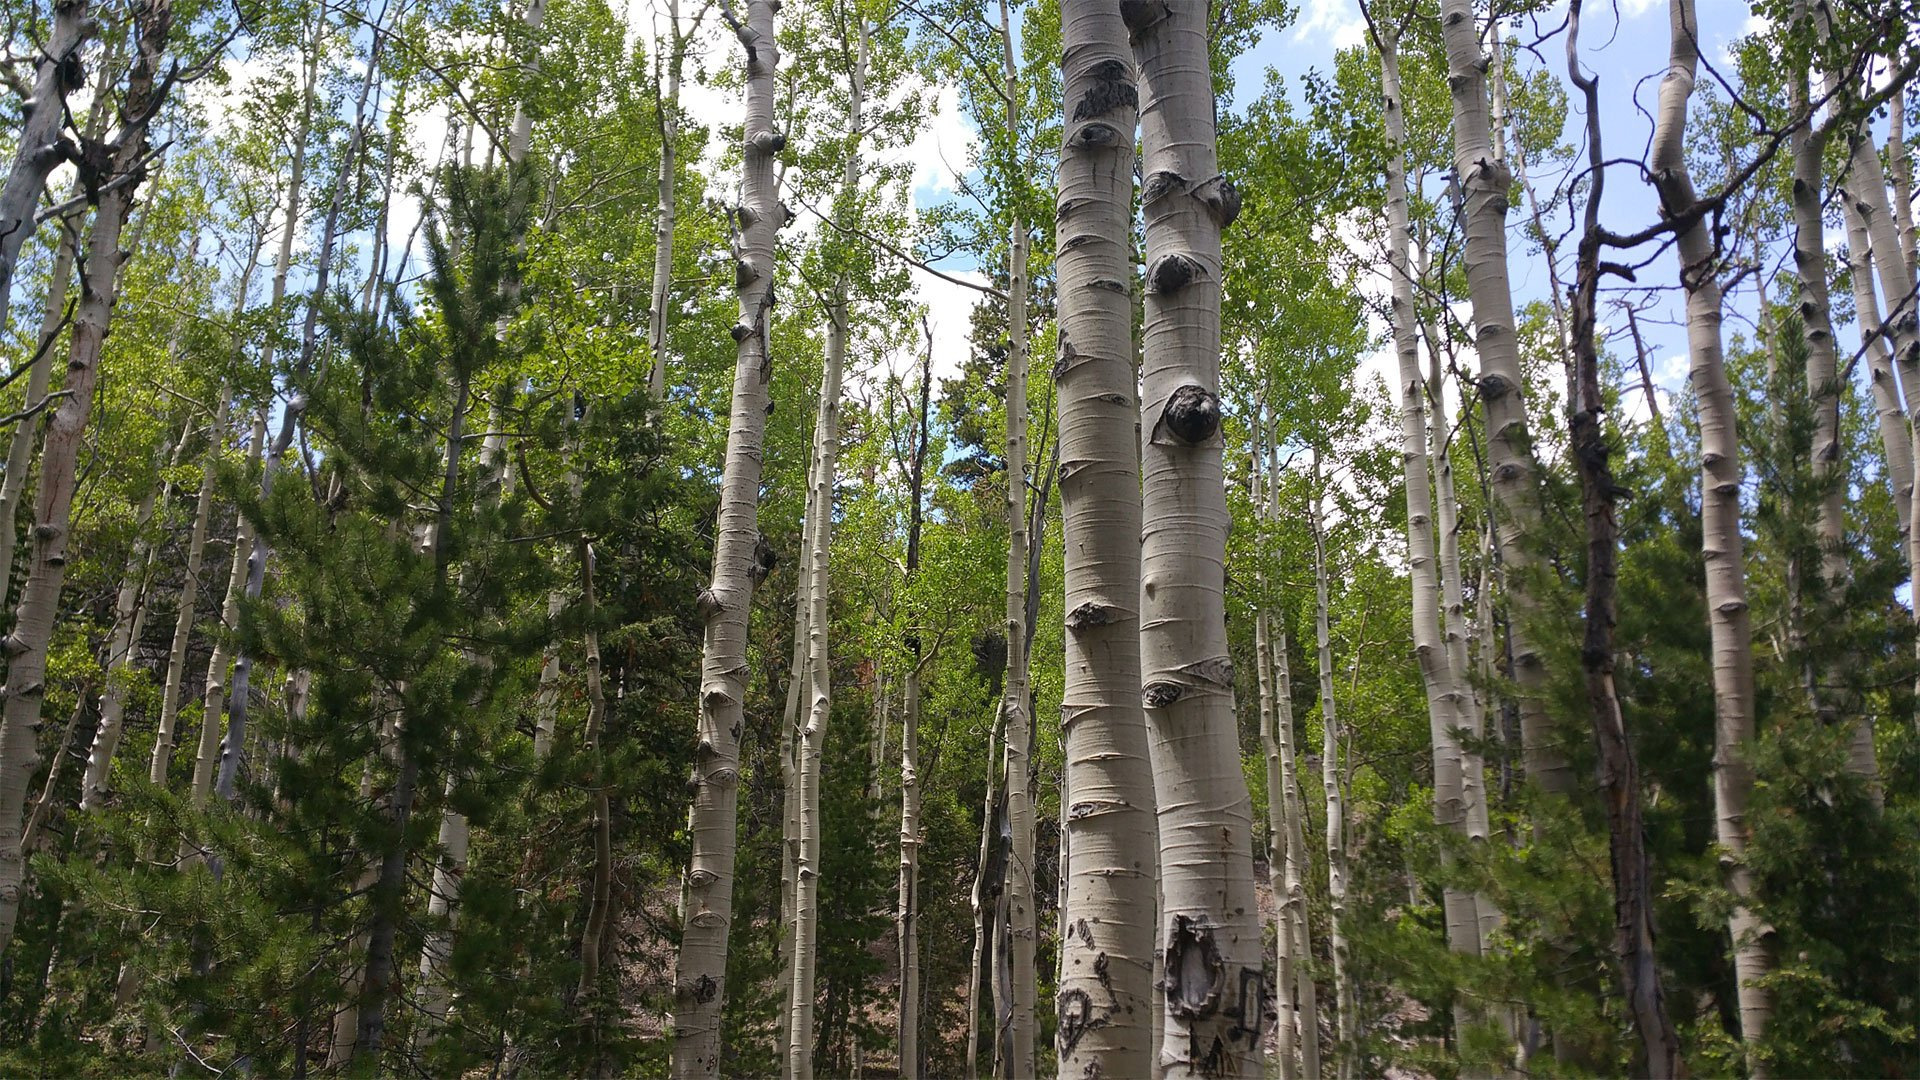 42 Aspens Productions, Tell your story Through Video